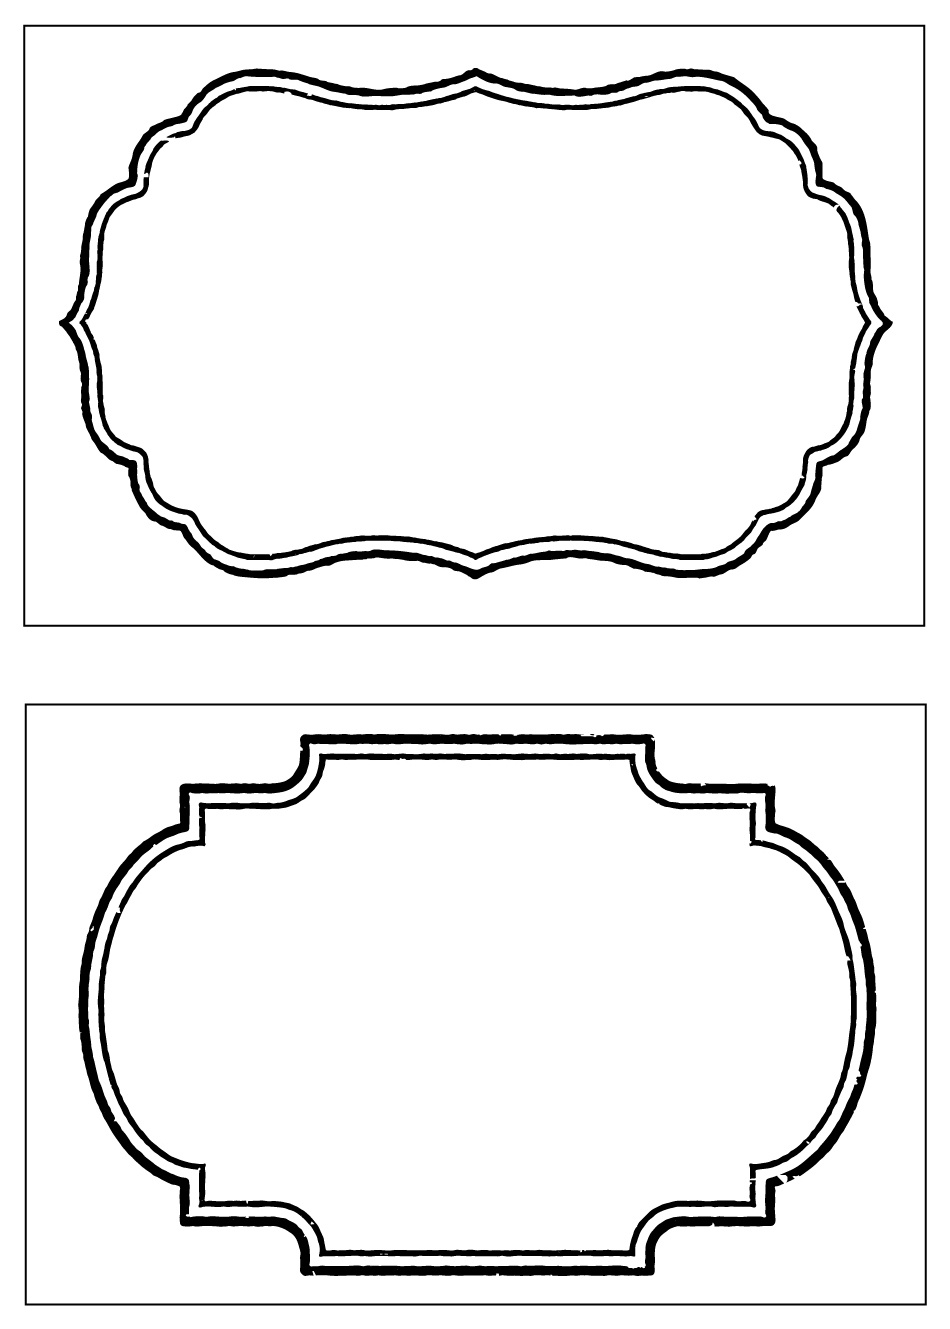 Party Basics: Food Labels - Clip Art Library - Free Printable Food Labels